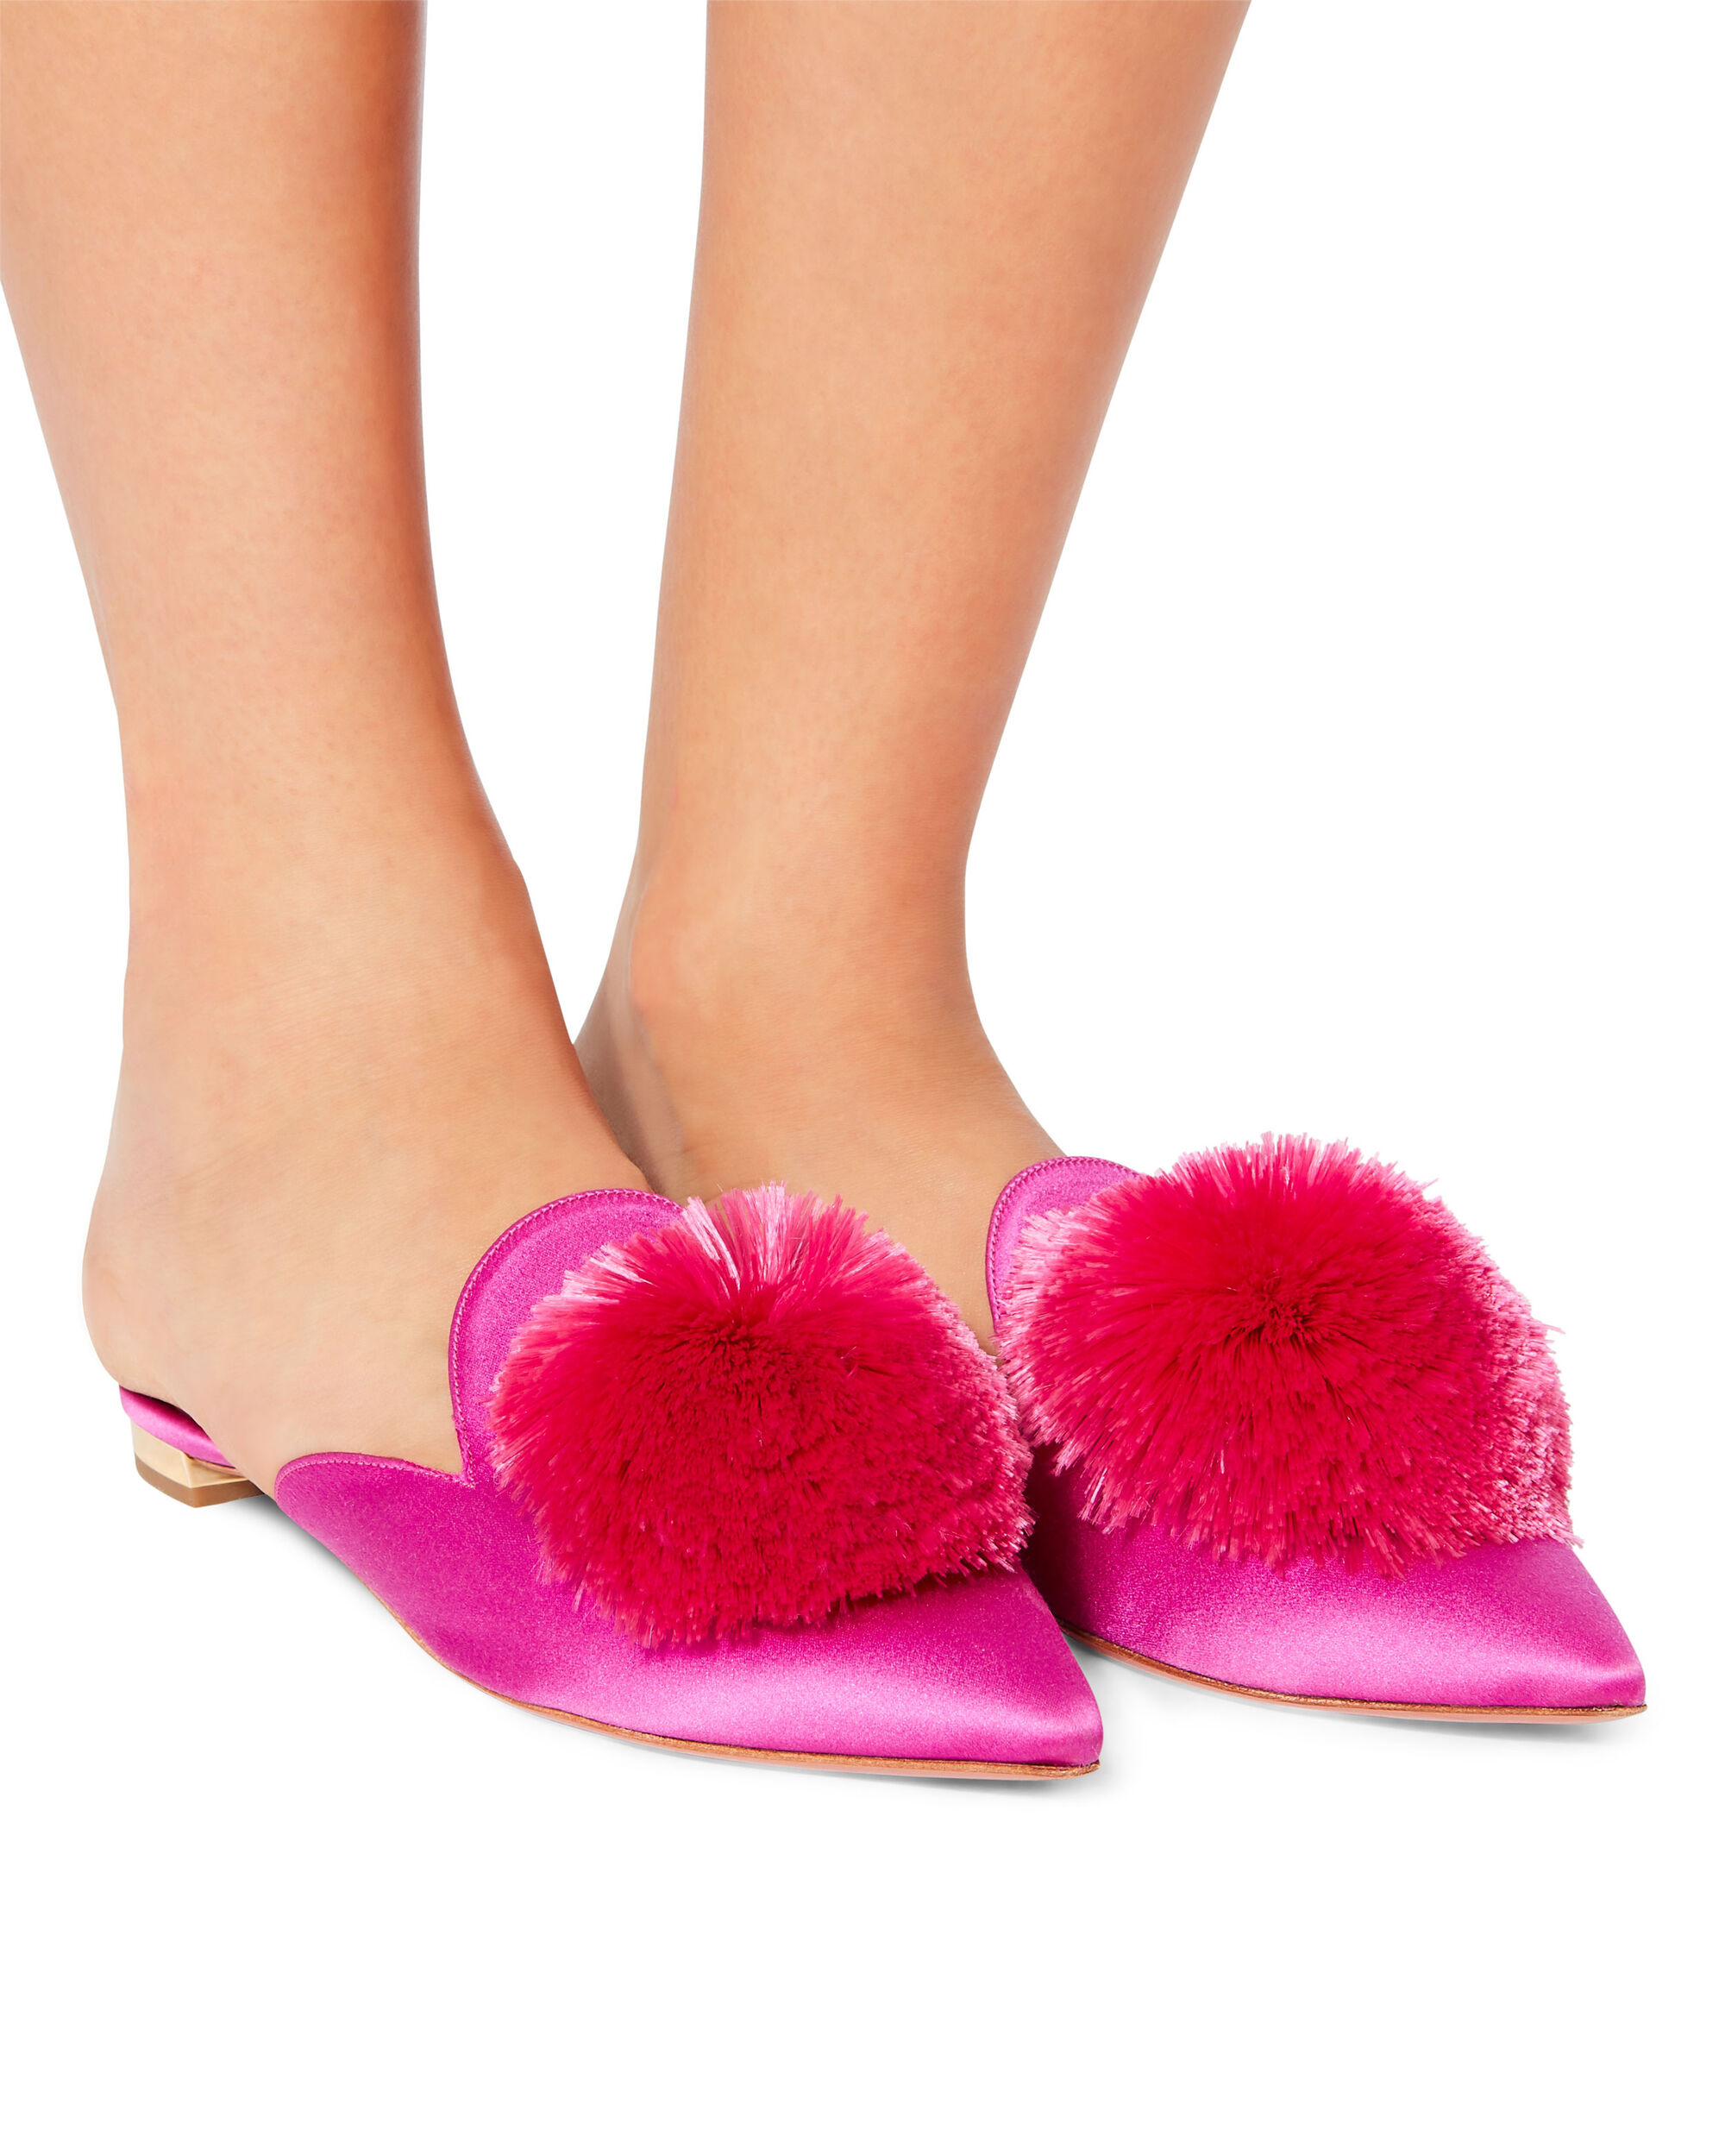 Powder Puff Pink Satin Slides, PINK, hi-res